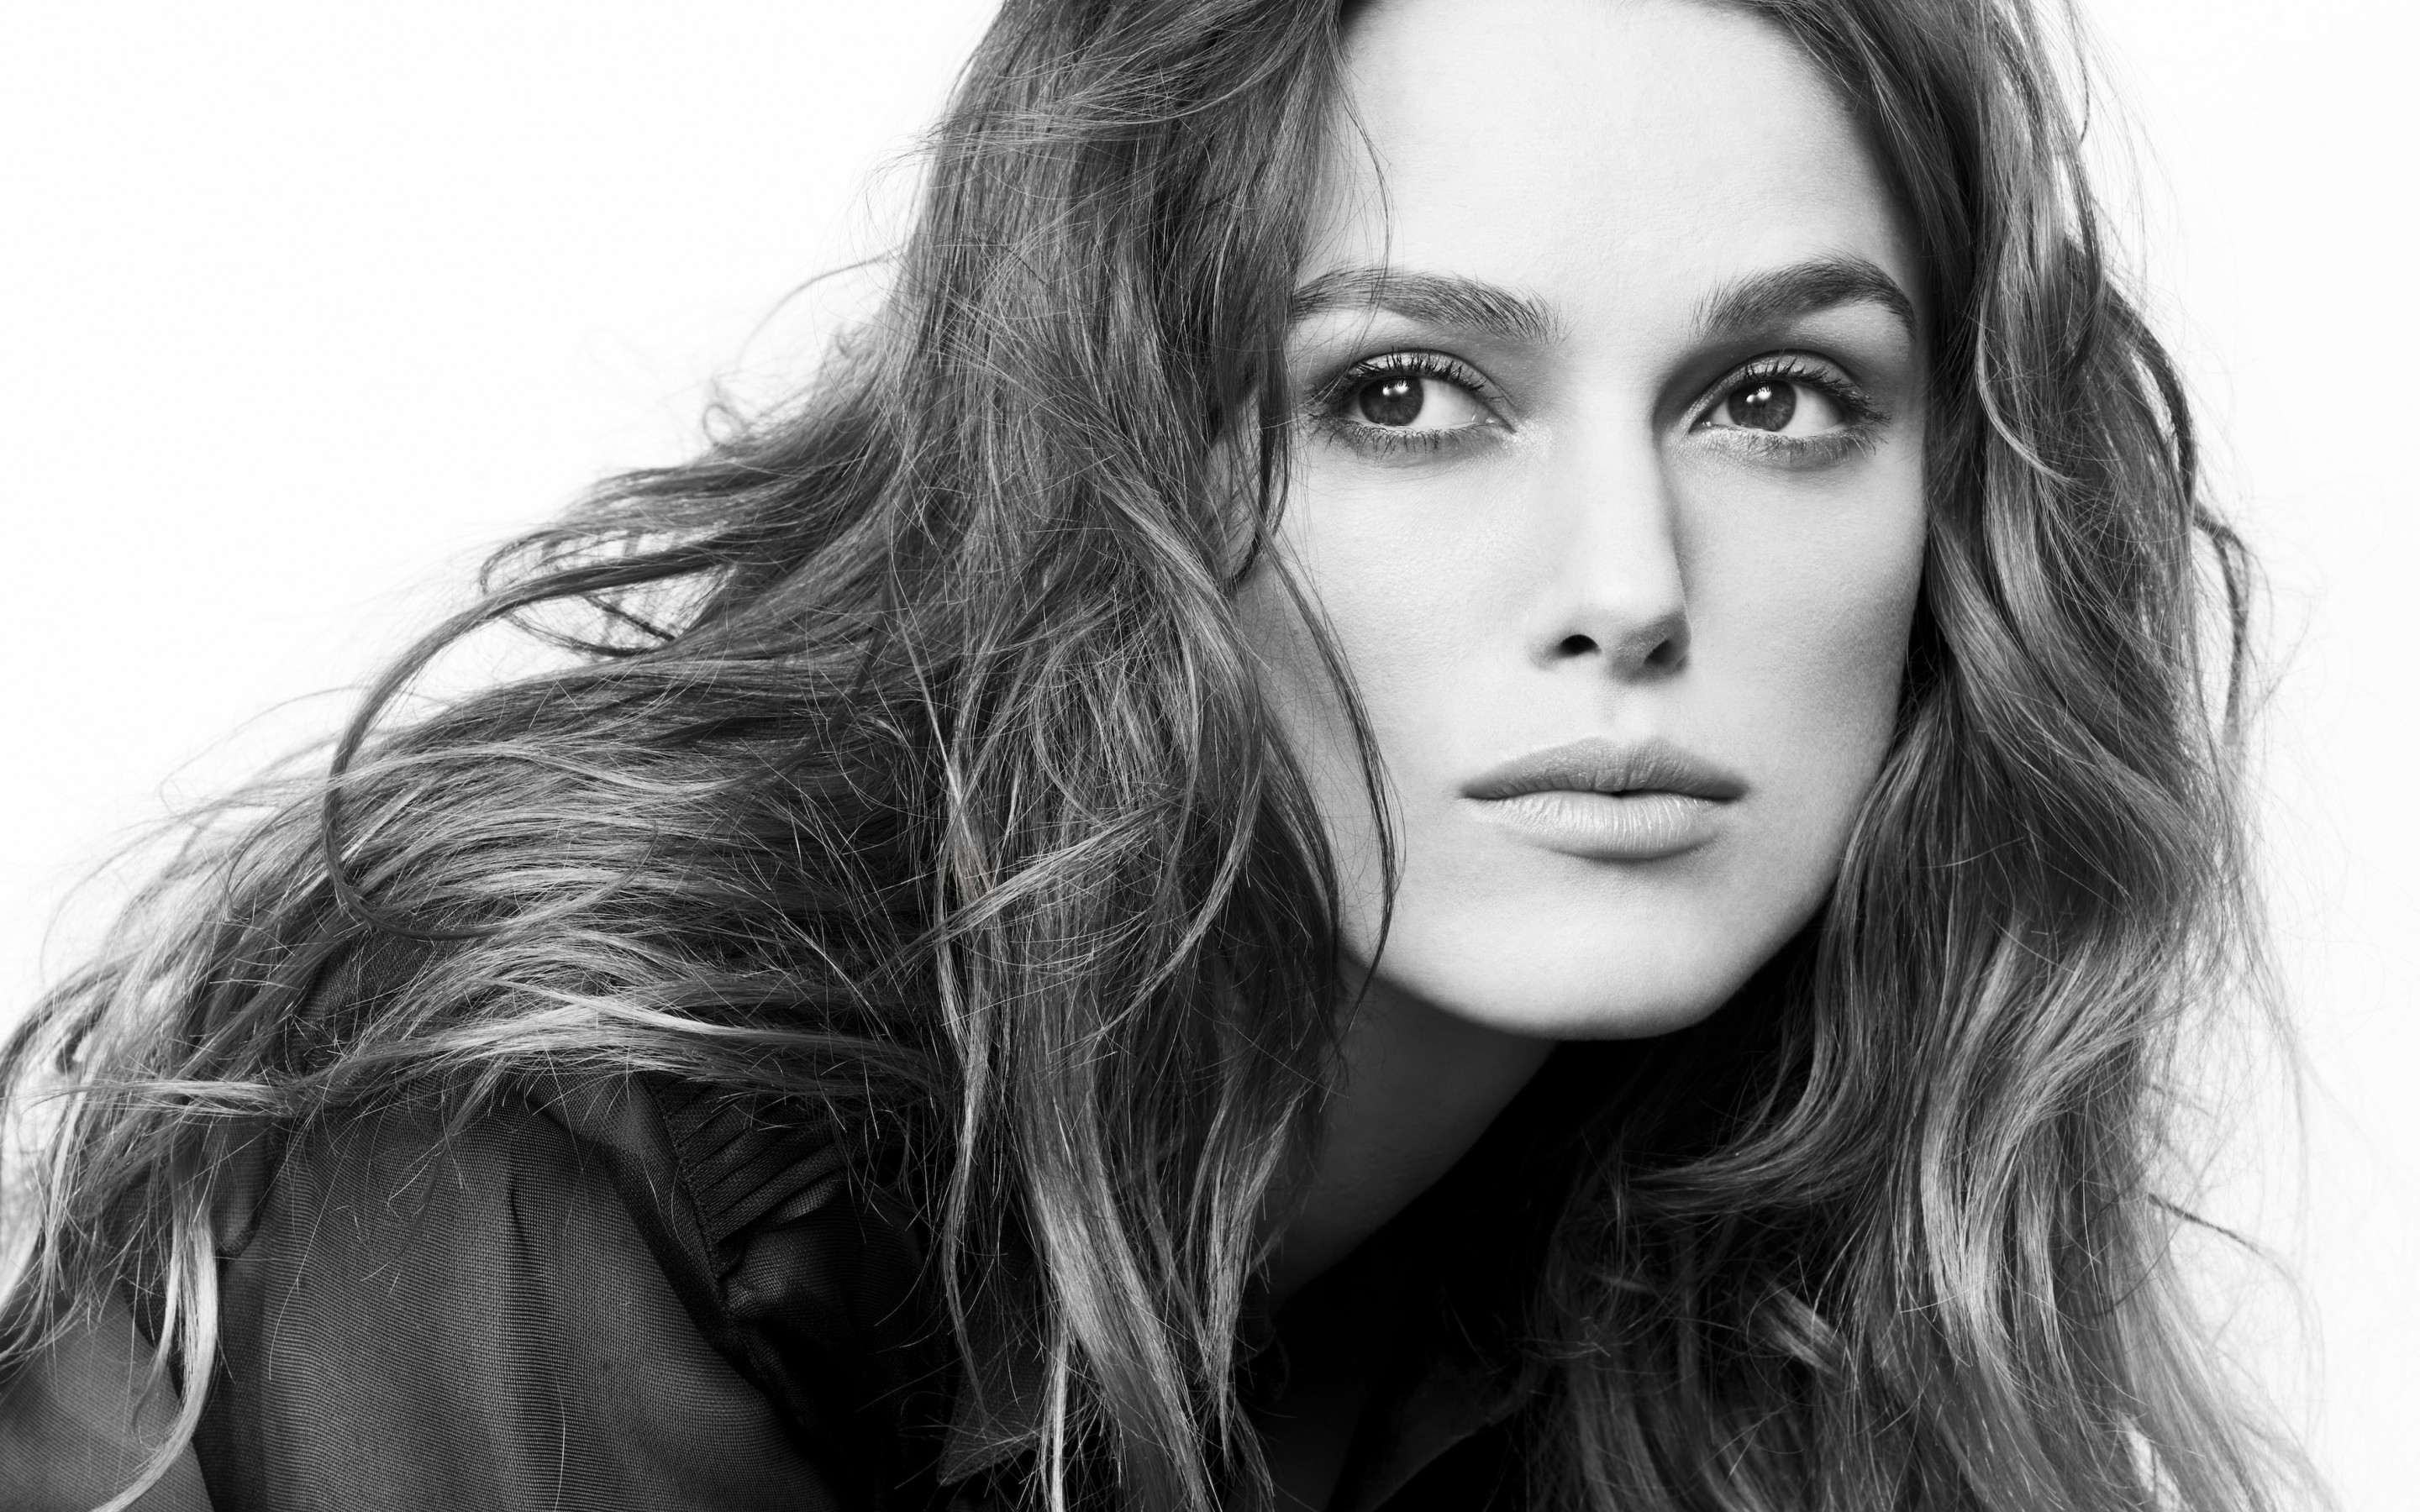 Keira Knightley in Black & White Wallpaper for Desktop 2880x1800